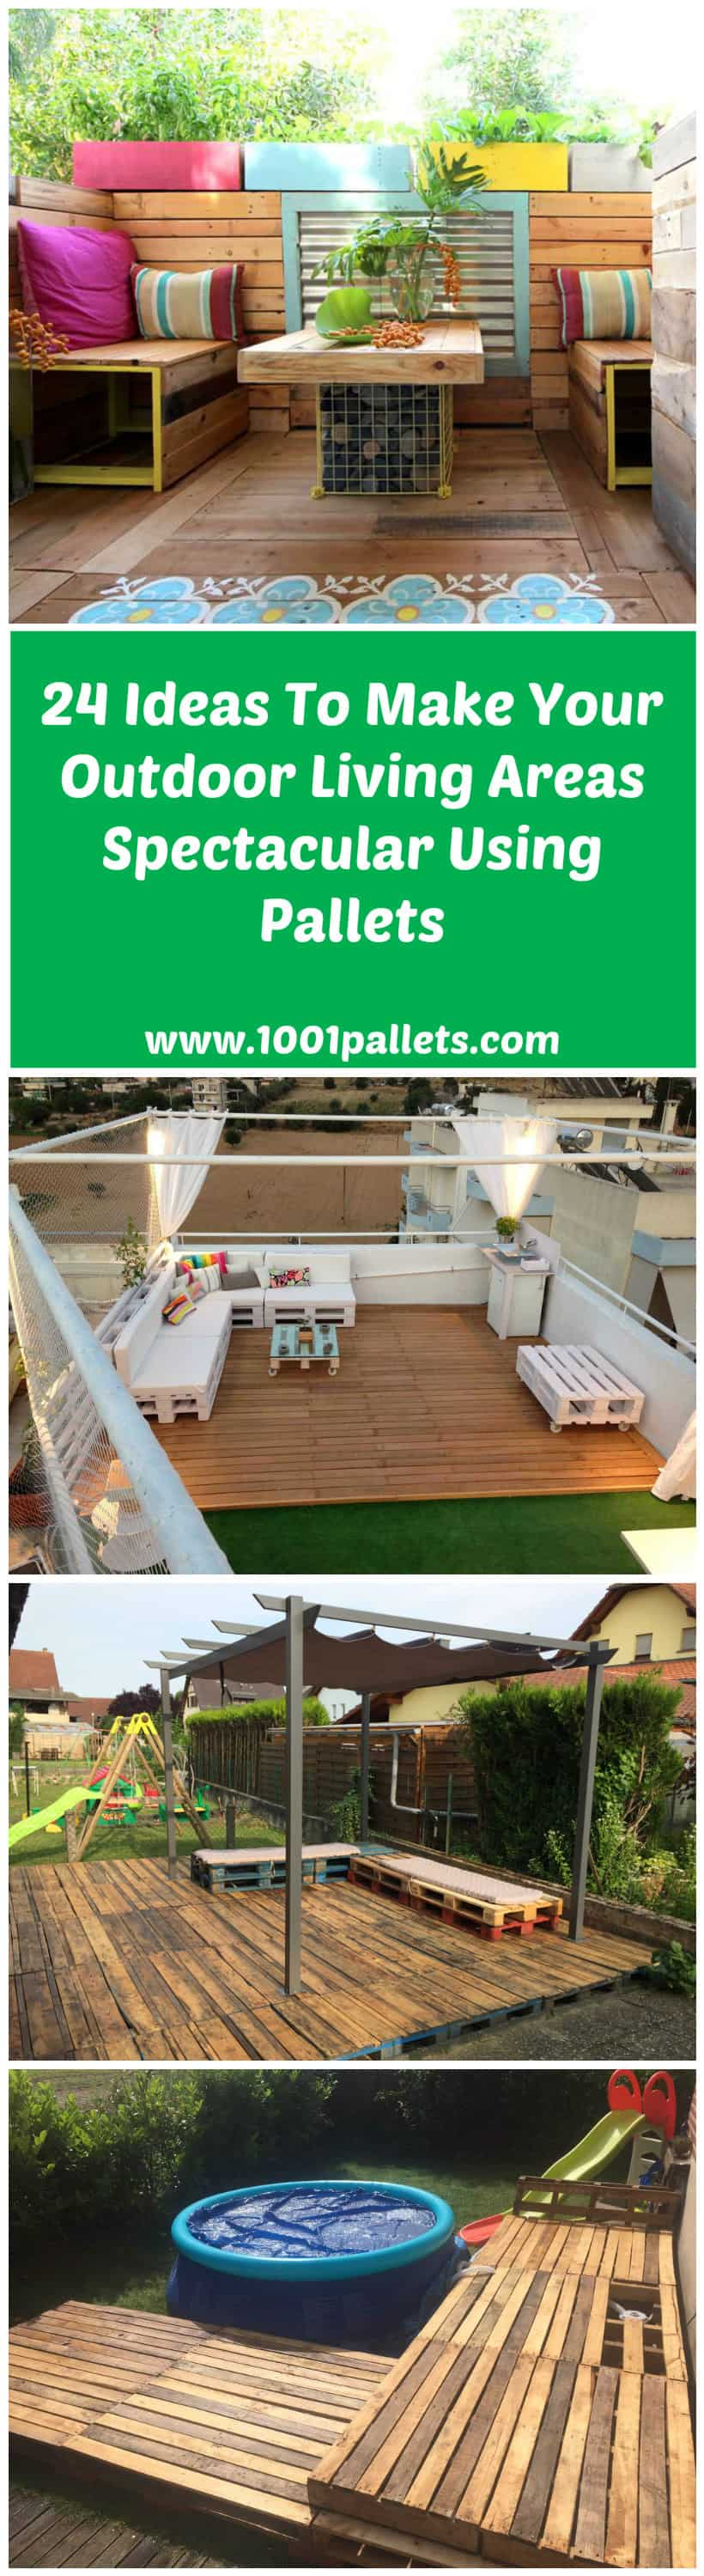 Decking Using Pallets Pallet Decks Pallet Terraces Patios O 1001 Pallets